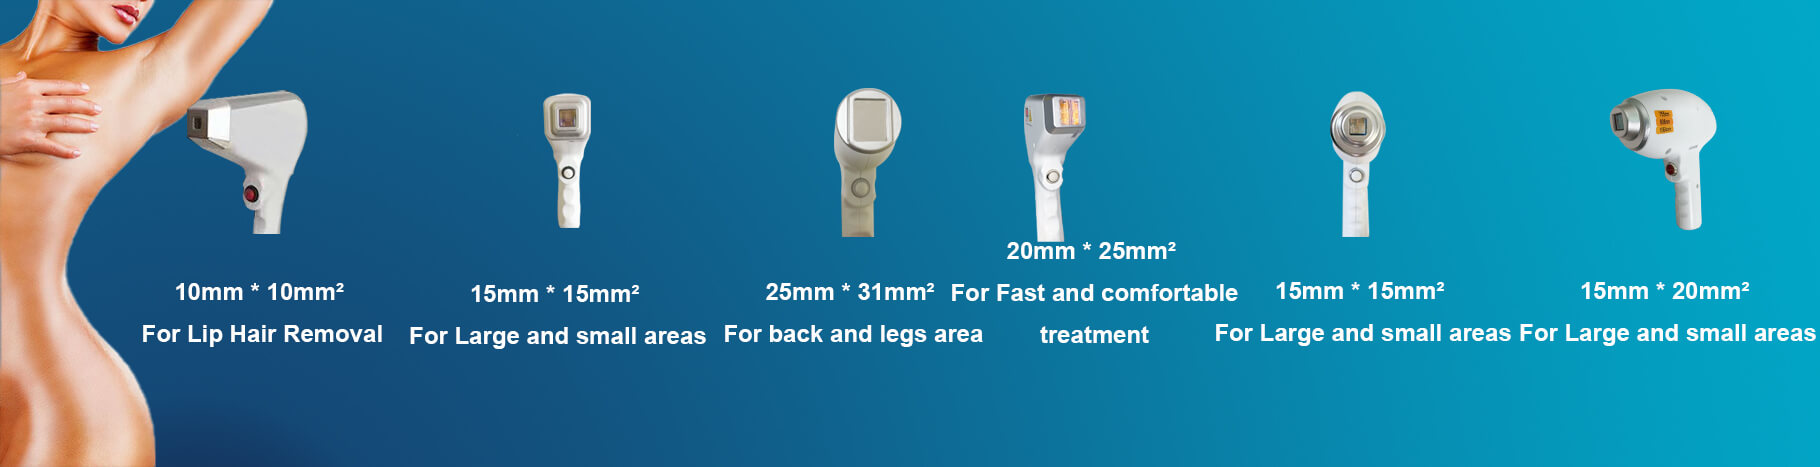 6 Kind Of Handpiece Spot Sizes For Your Option According To Your Needs